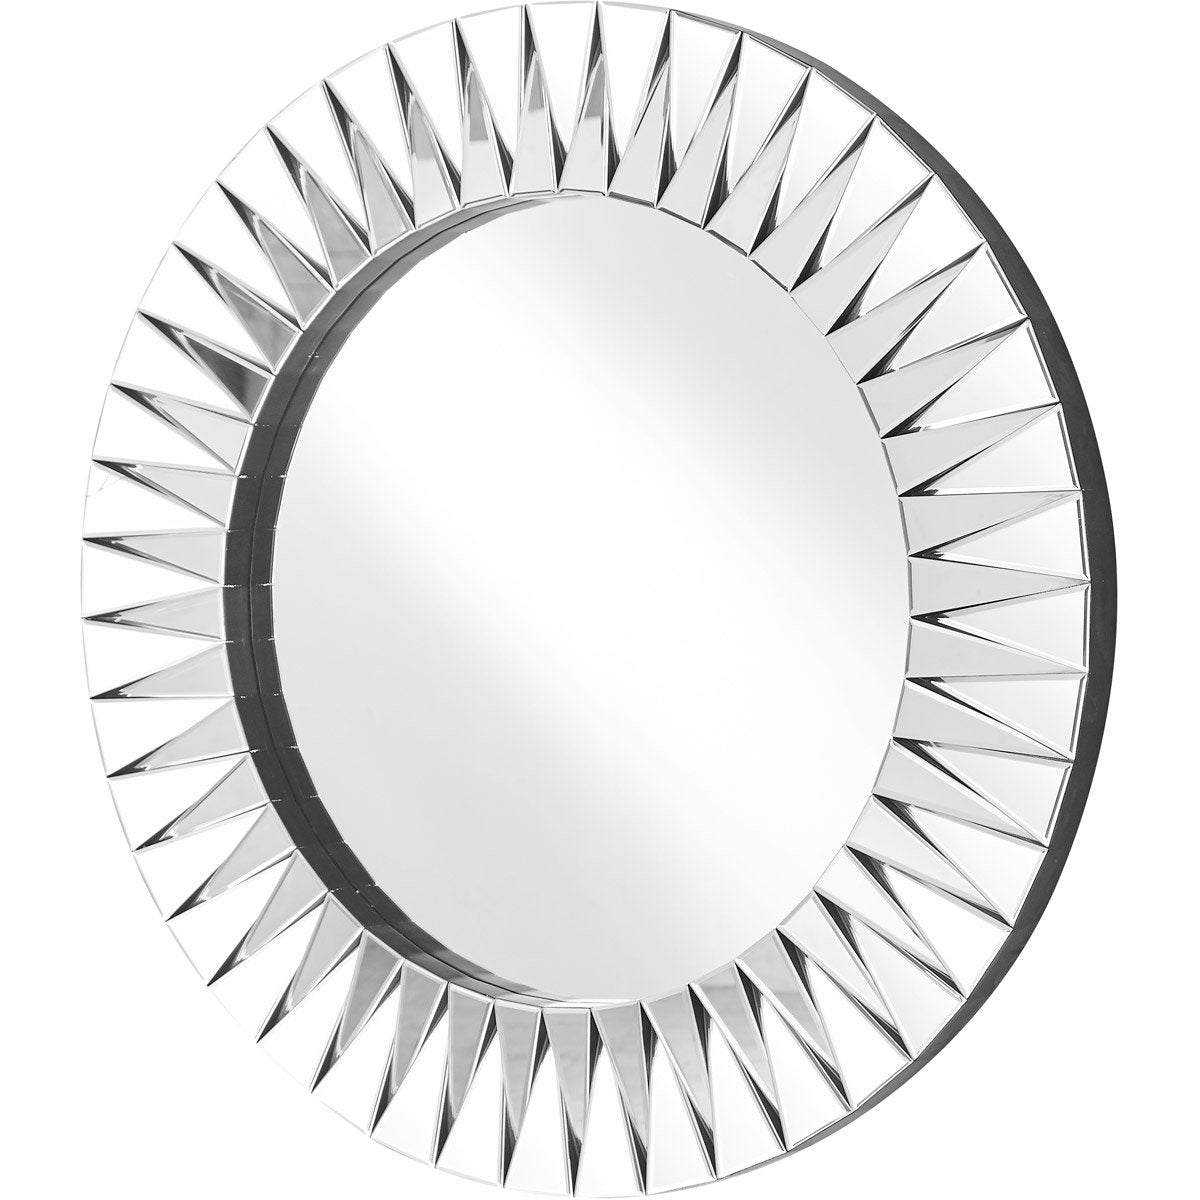 Sparkle 39.5 X 39.5 Contemporary Mirror - Clear Finish (Mr9148) Mirror